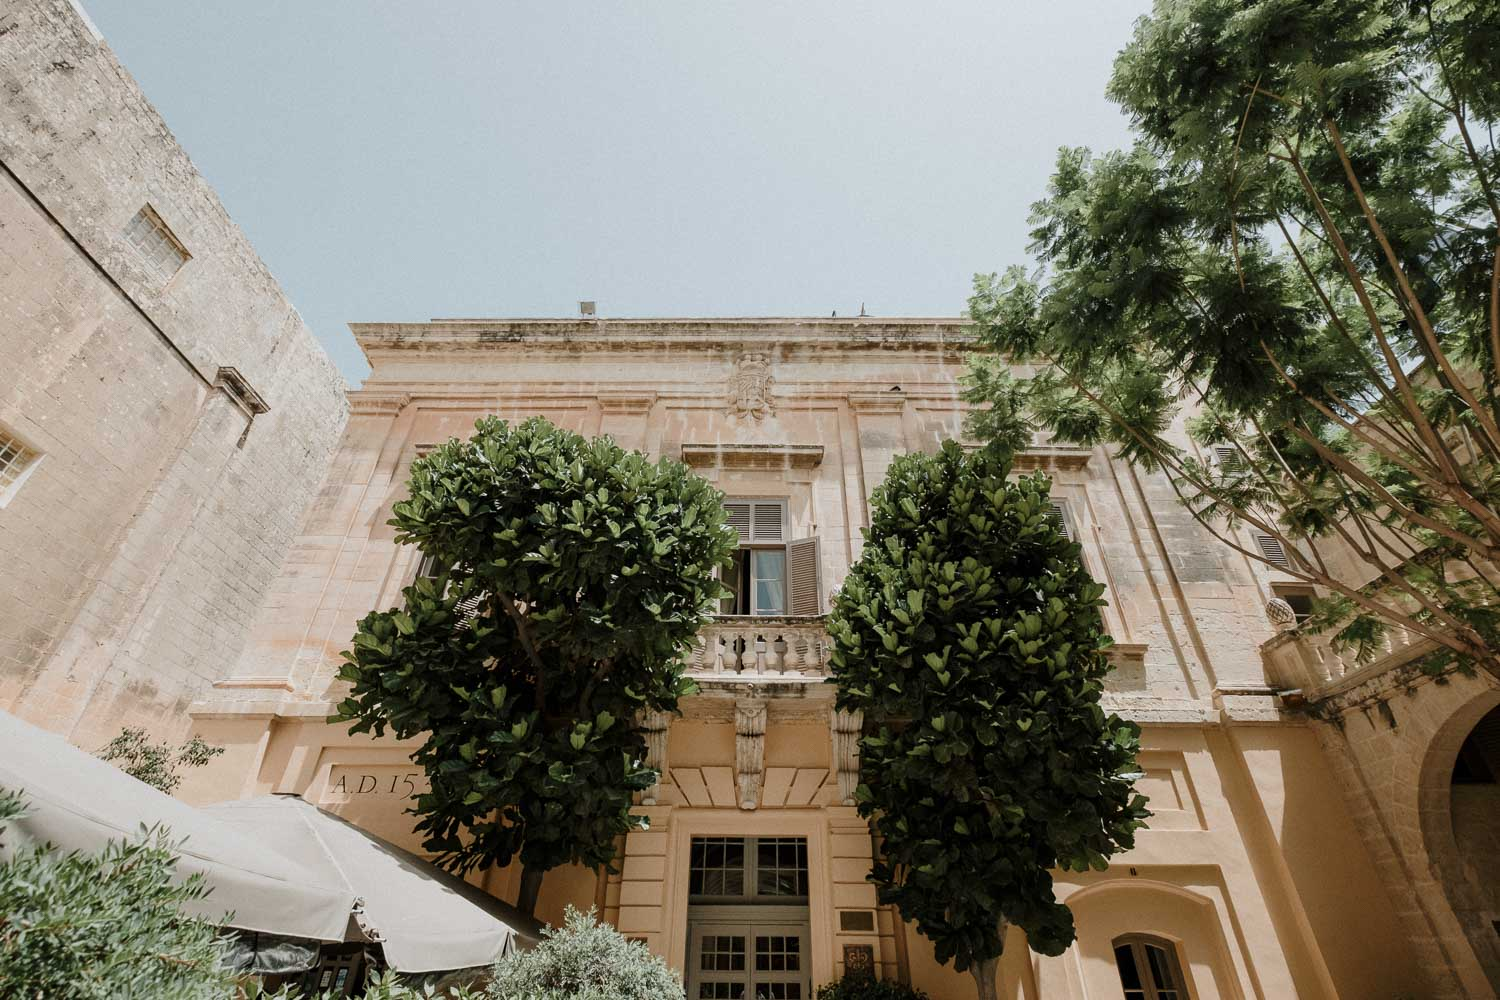 Malta Mdina Destination Wedding Photographer Villa Mdina LozzyRichard Stuart Dudleston Photography 4 1